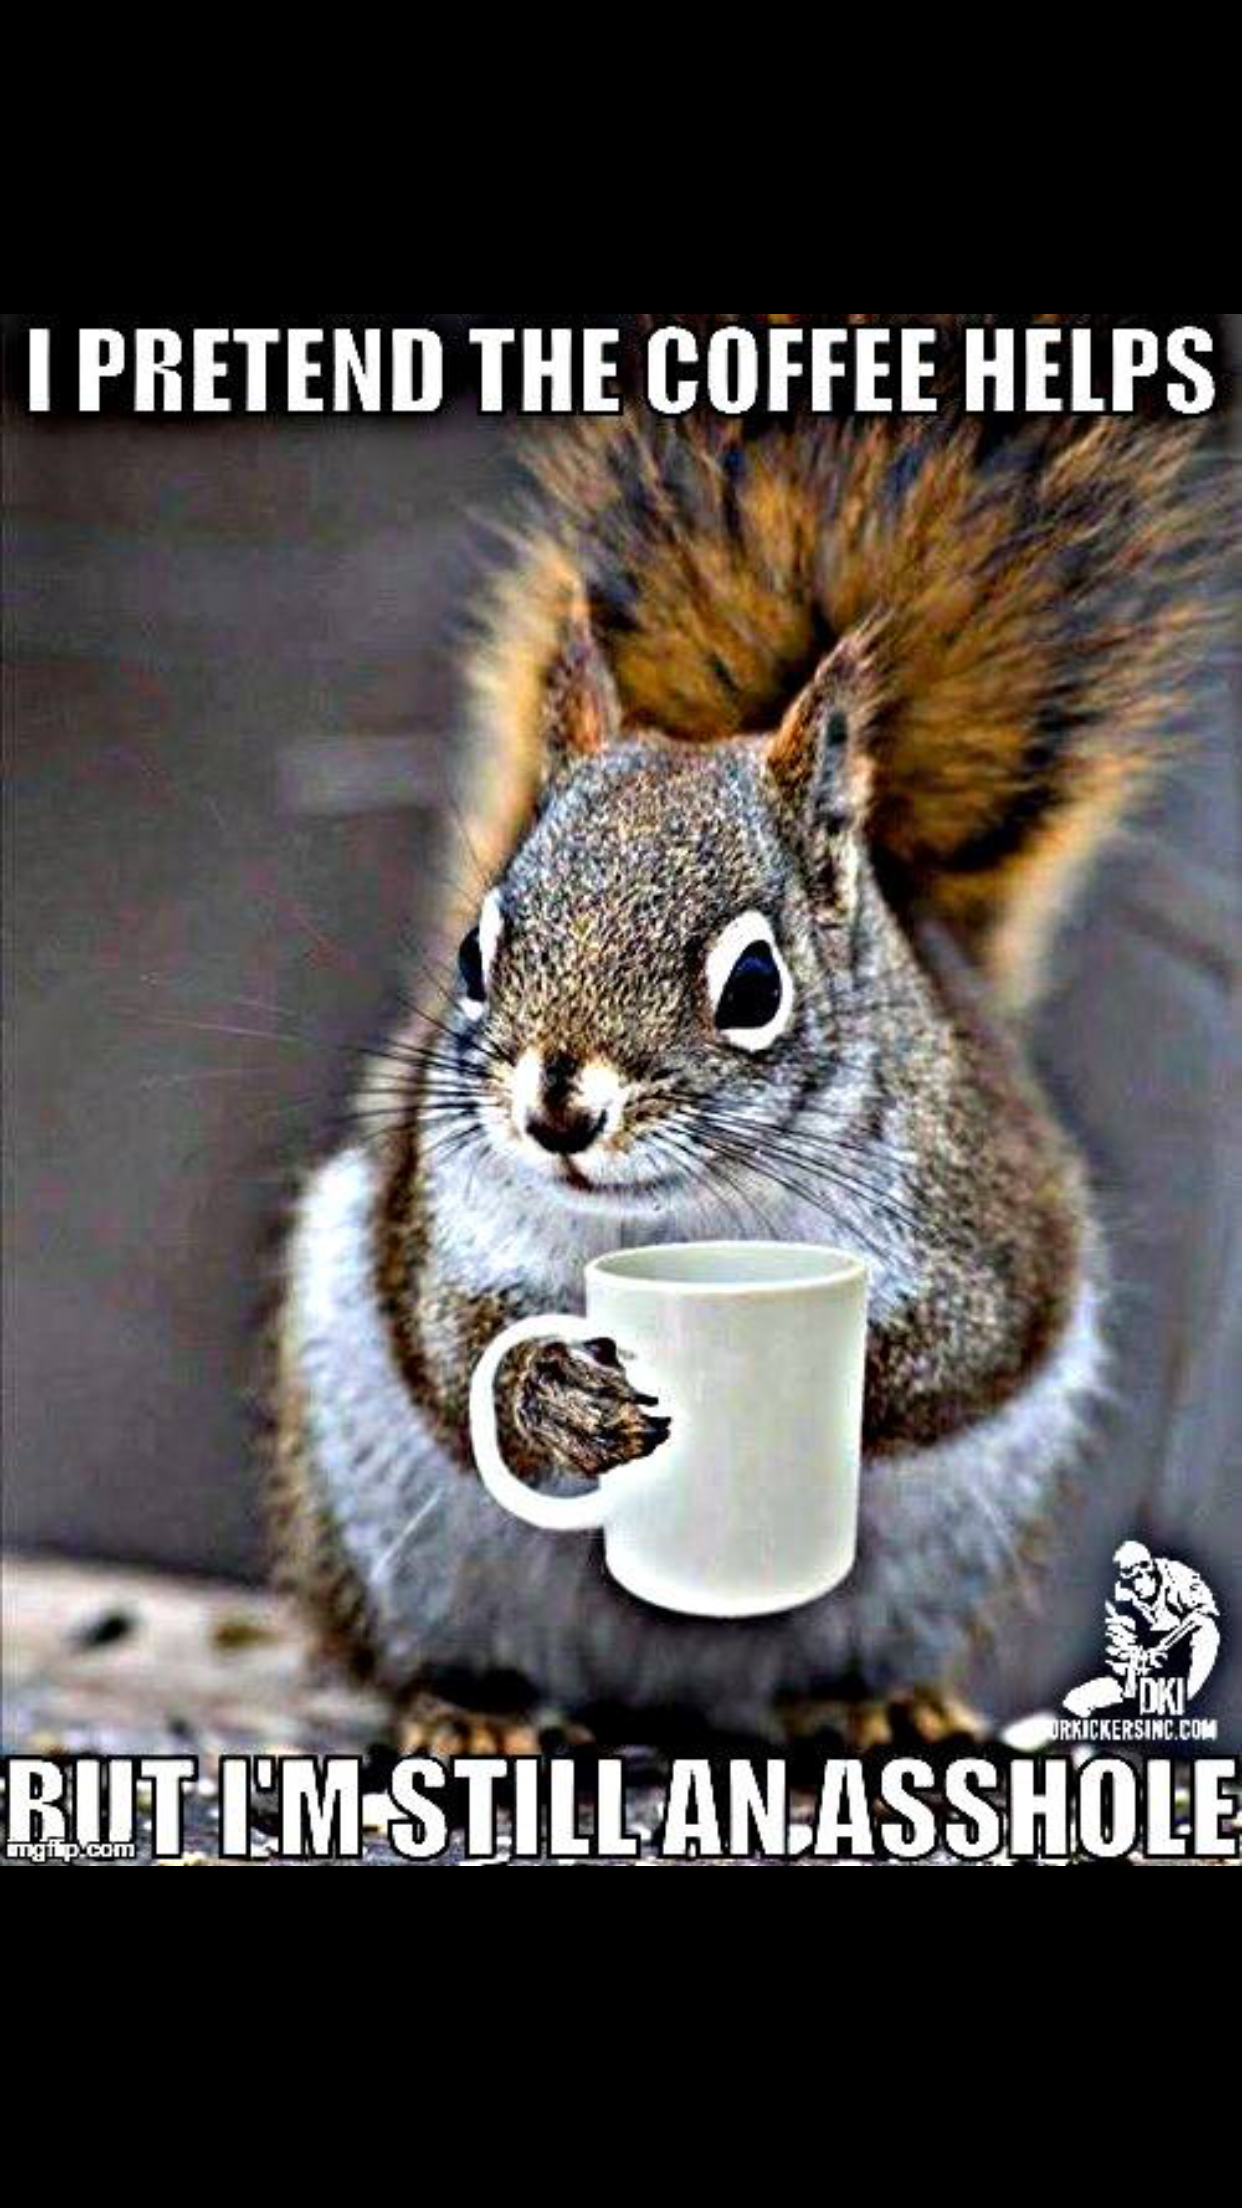 Pin by Name Redacted on Military Memes | Good morning quotes, Good ... #iLoveCoffee